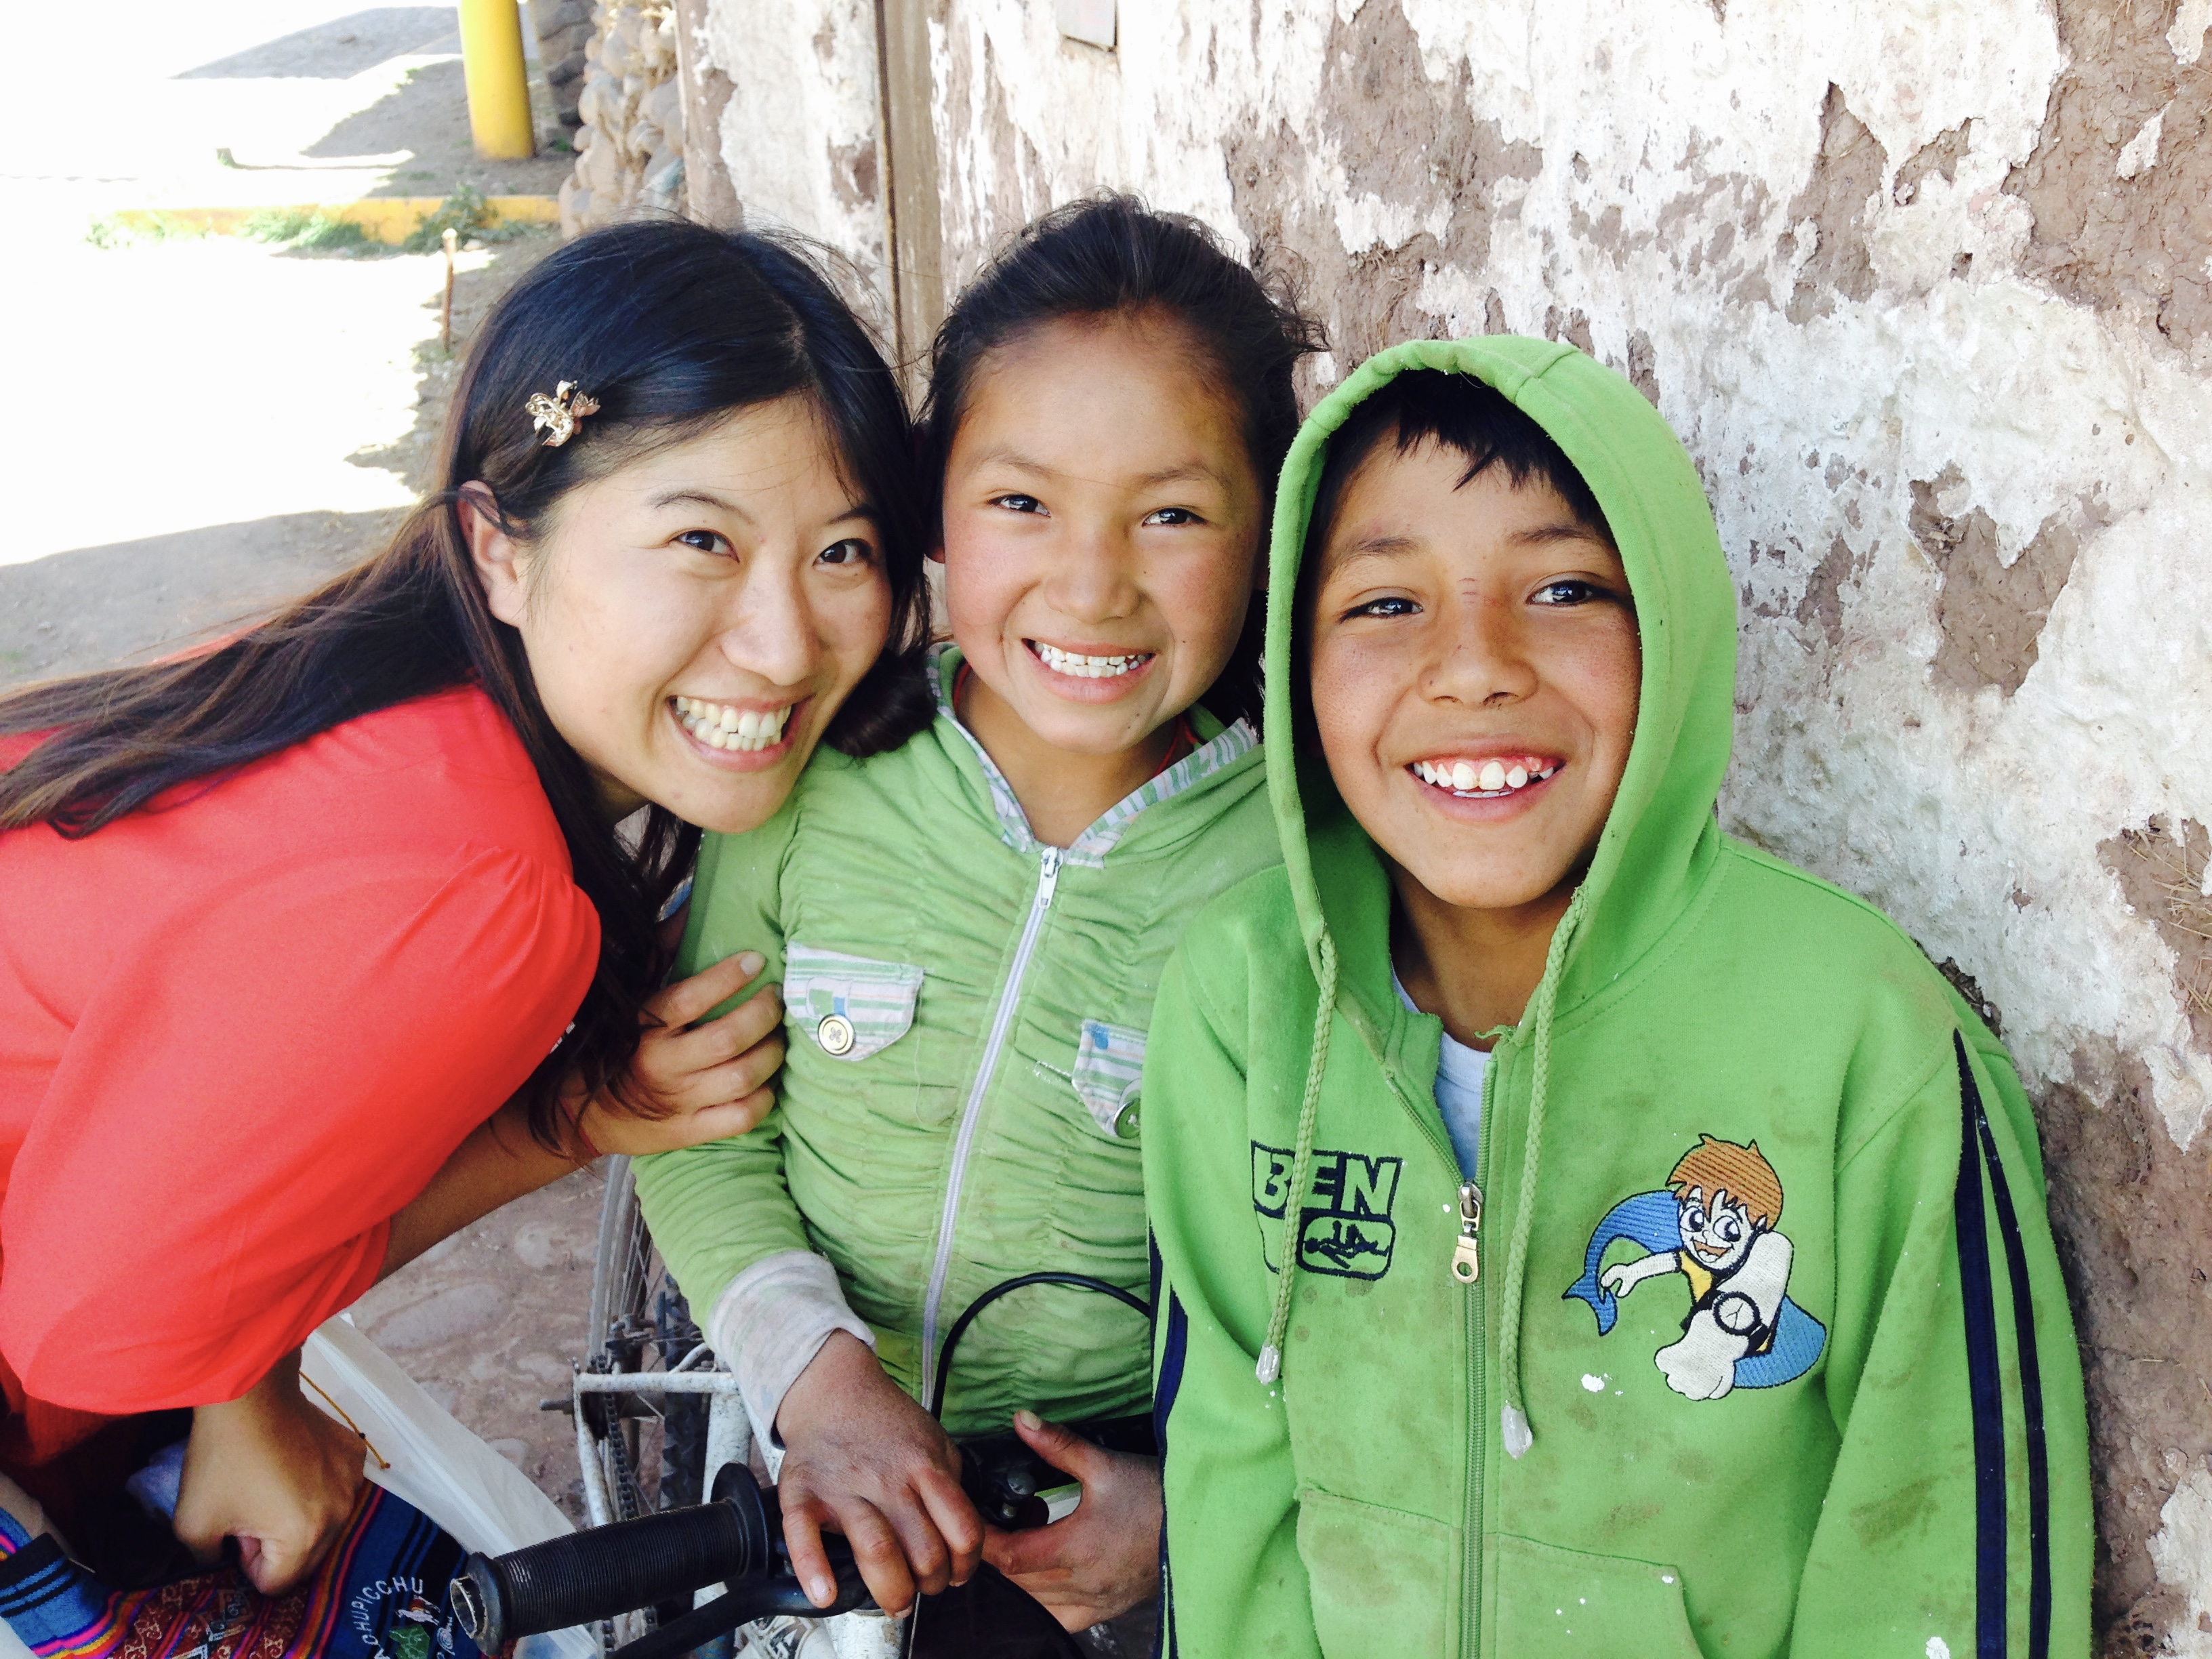 Peru with smile kids